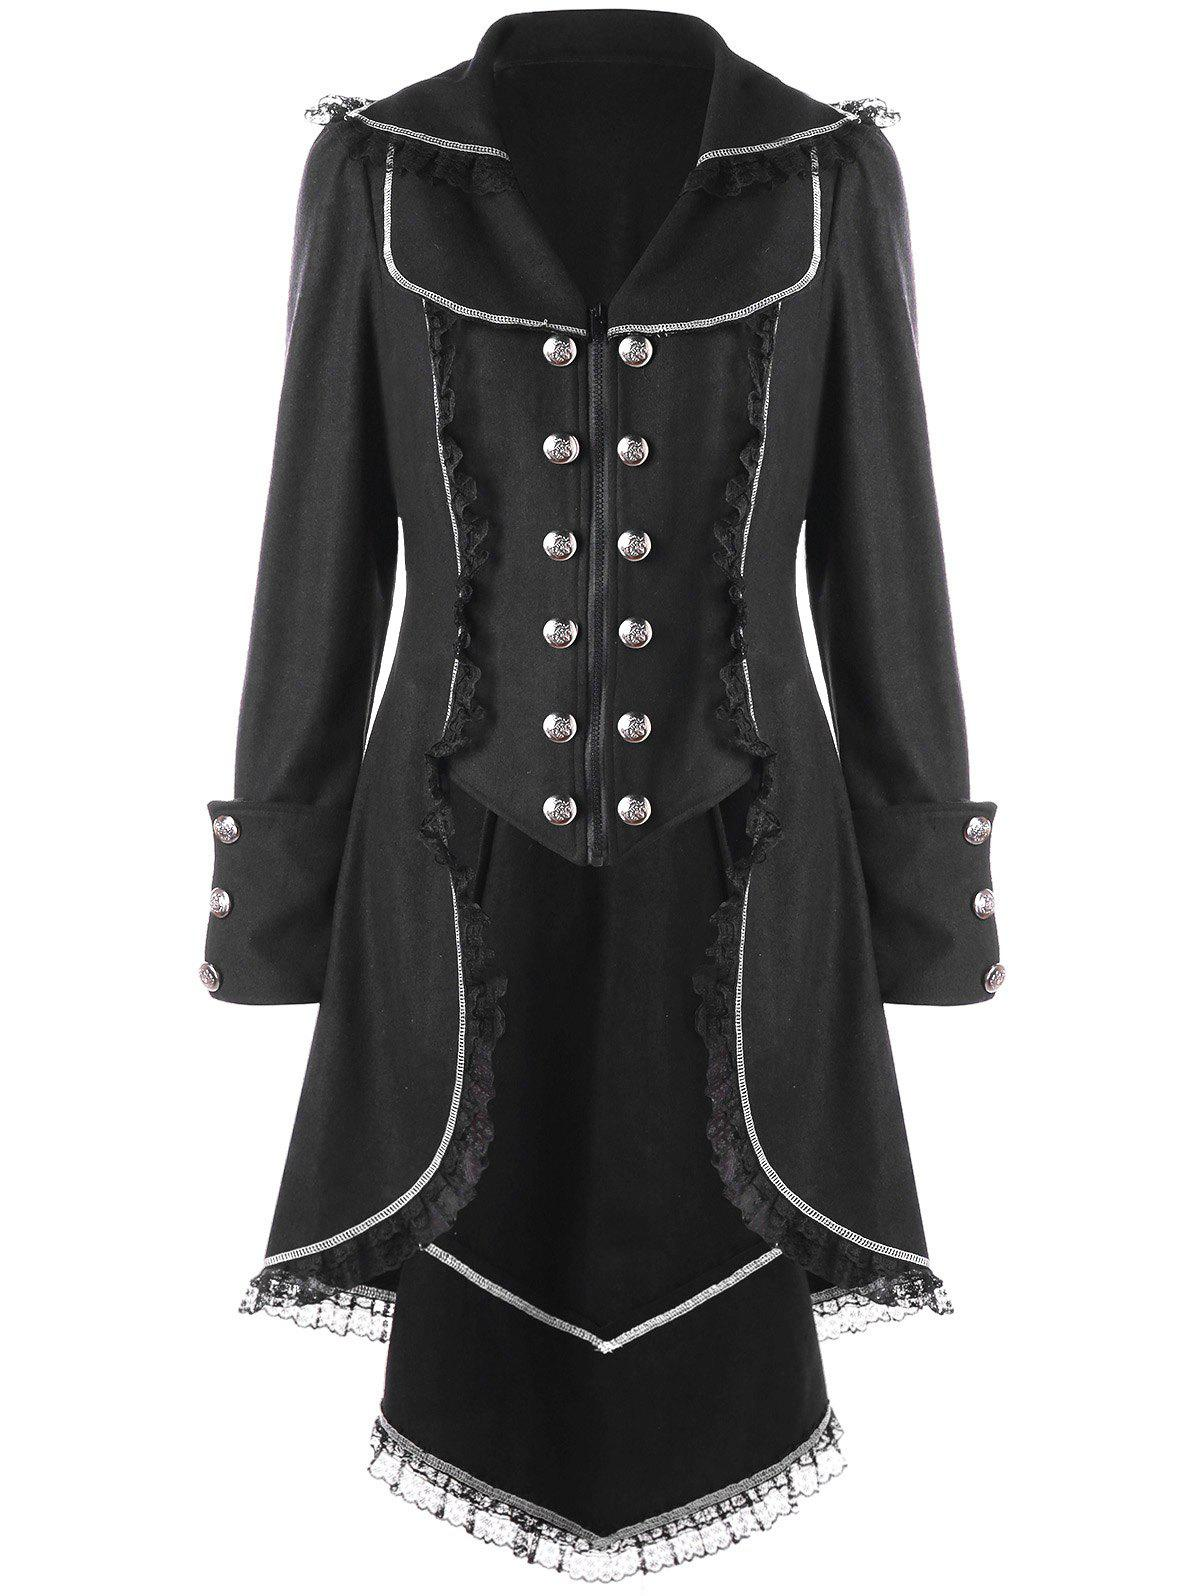 Double Breasted Lace Trim Tail CoatWOMEN<br><br>Size: 2XL; Color: BLACK; Clothes Type: Trench; Material: Polyester; Type: Slim; Shirt Length: Long; Sleeve Length: Full; Collar: Turndown Collar; Pattern Type: Solid; Style: Gothic; Season: Fall,Spring; Weight: 0.9100kg; Package Contents: 1 x Coat;